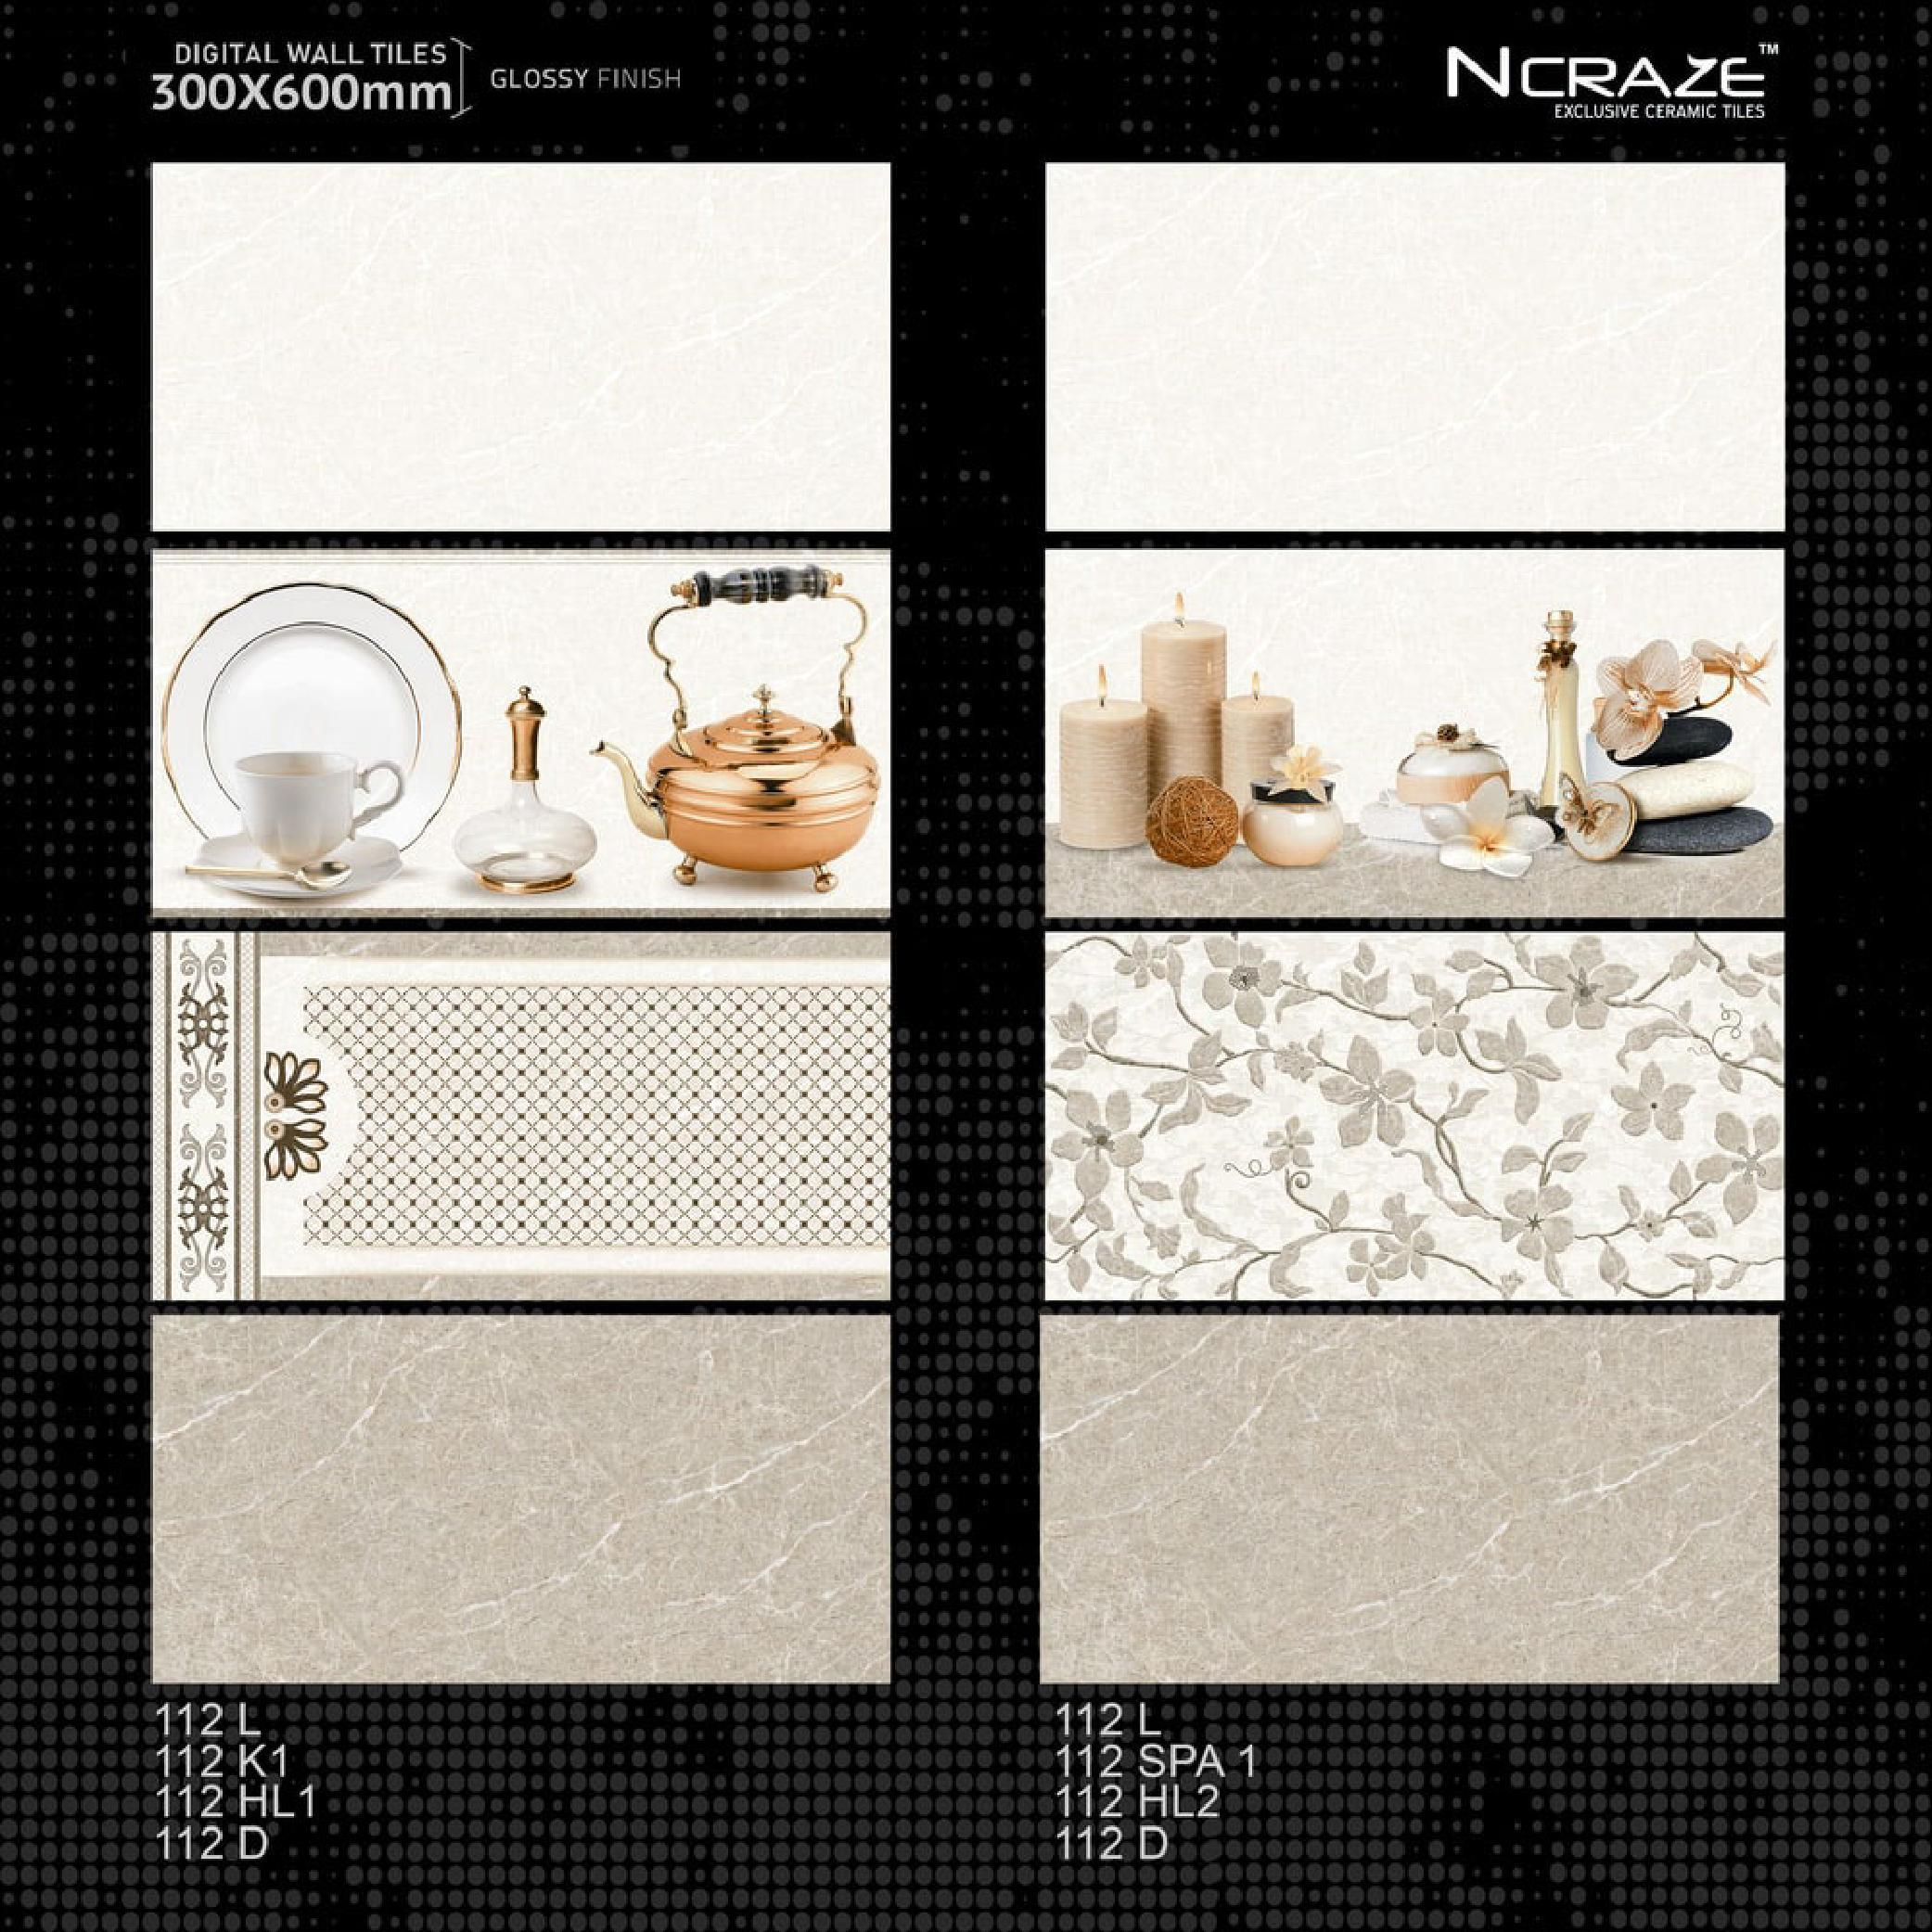 Attractive Design 300x600mm vitrified Glossy punch Ceramic Wall tiles For Farmhouse